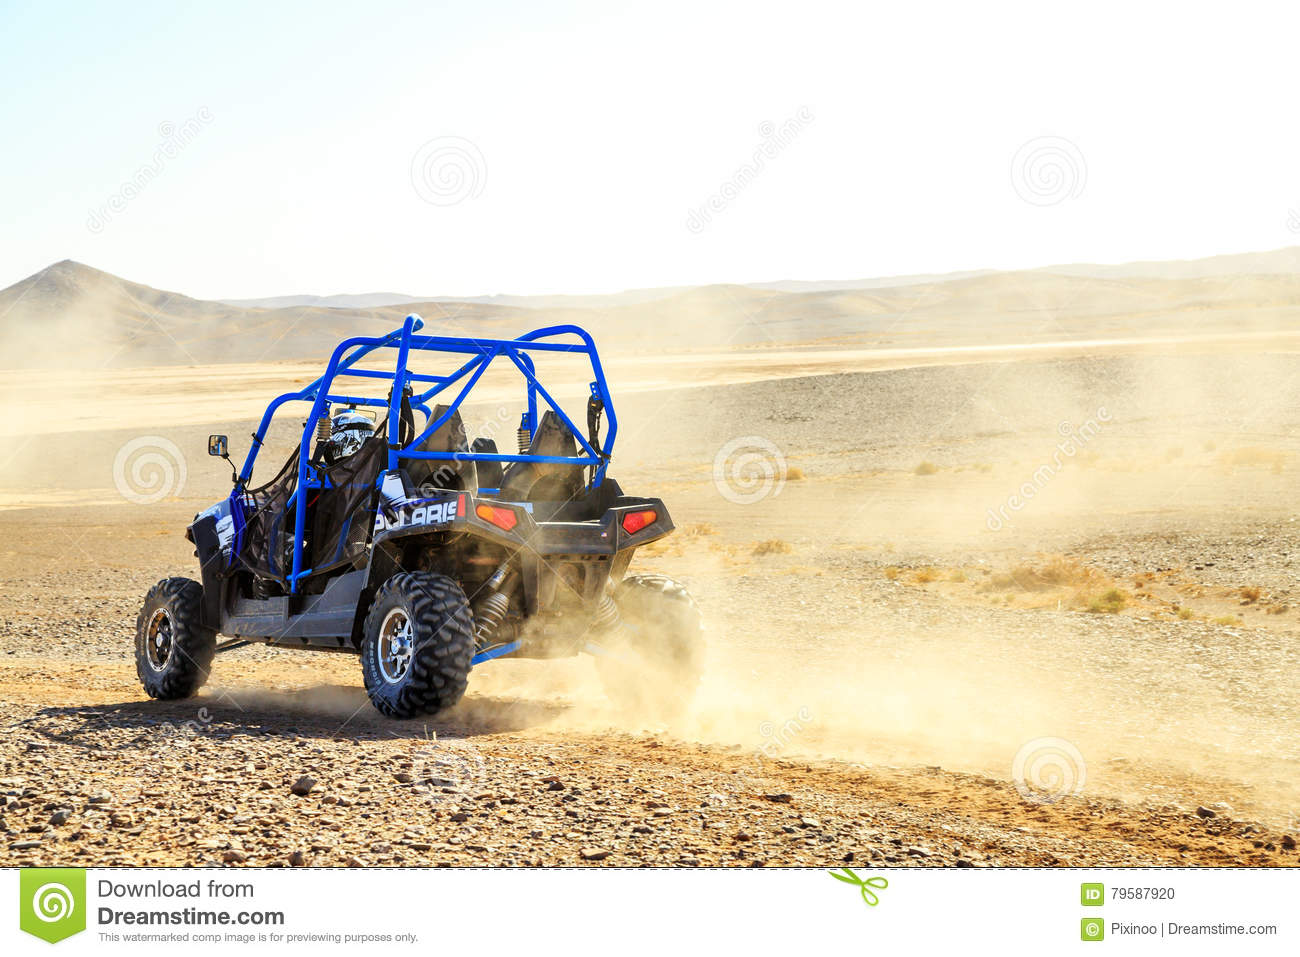 hight resolution of merzouga morocco feb 25 2016 back view on blue polaris rzr 800 with it s pilot in morocco desert near merzouga merzouga is famous for its dunes